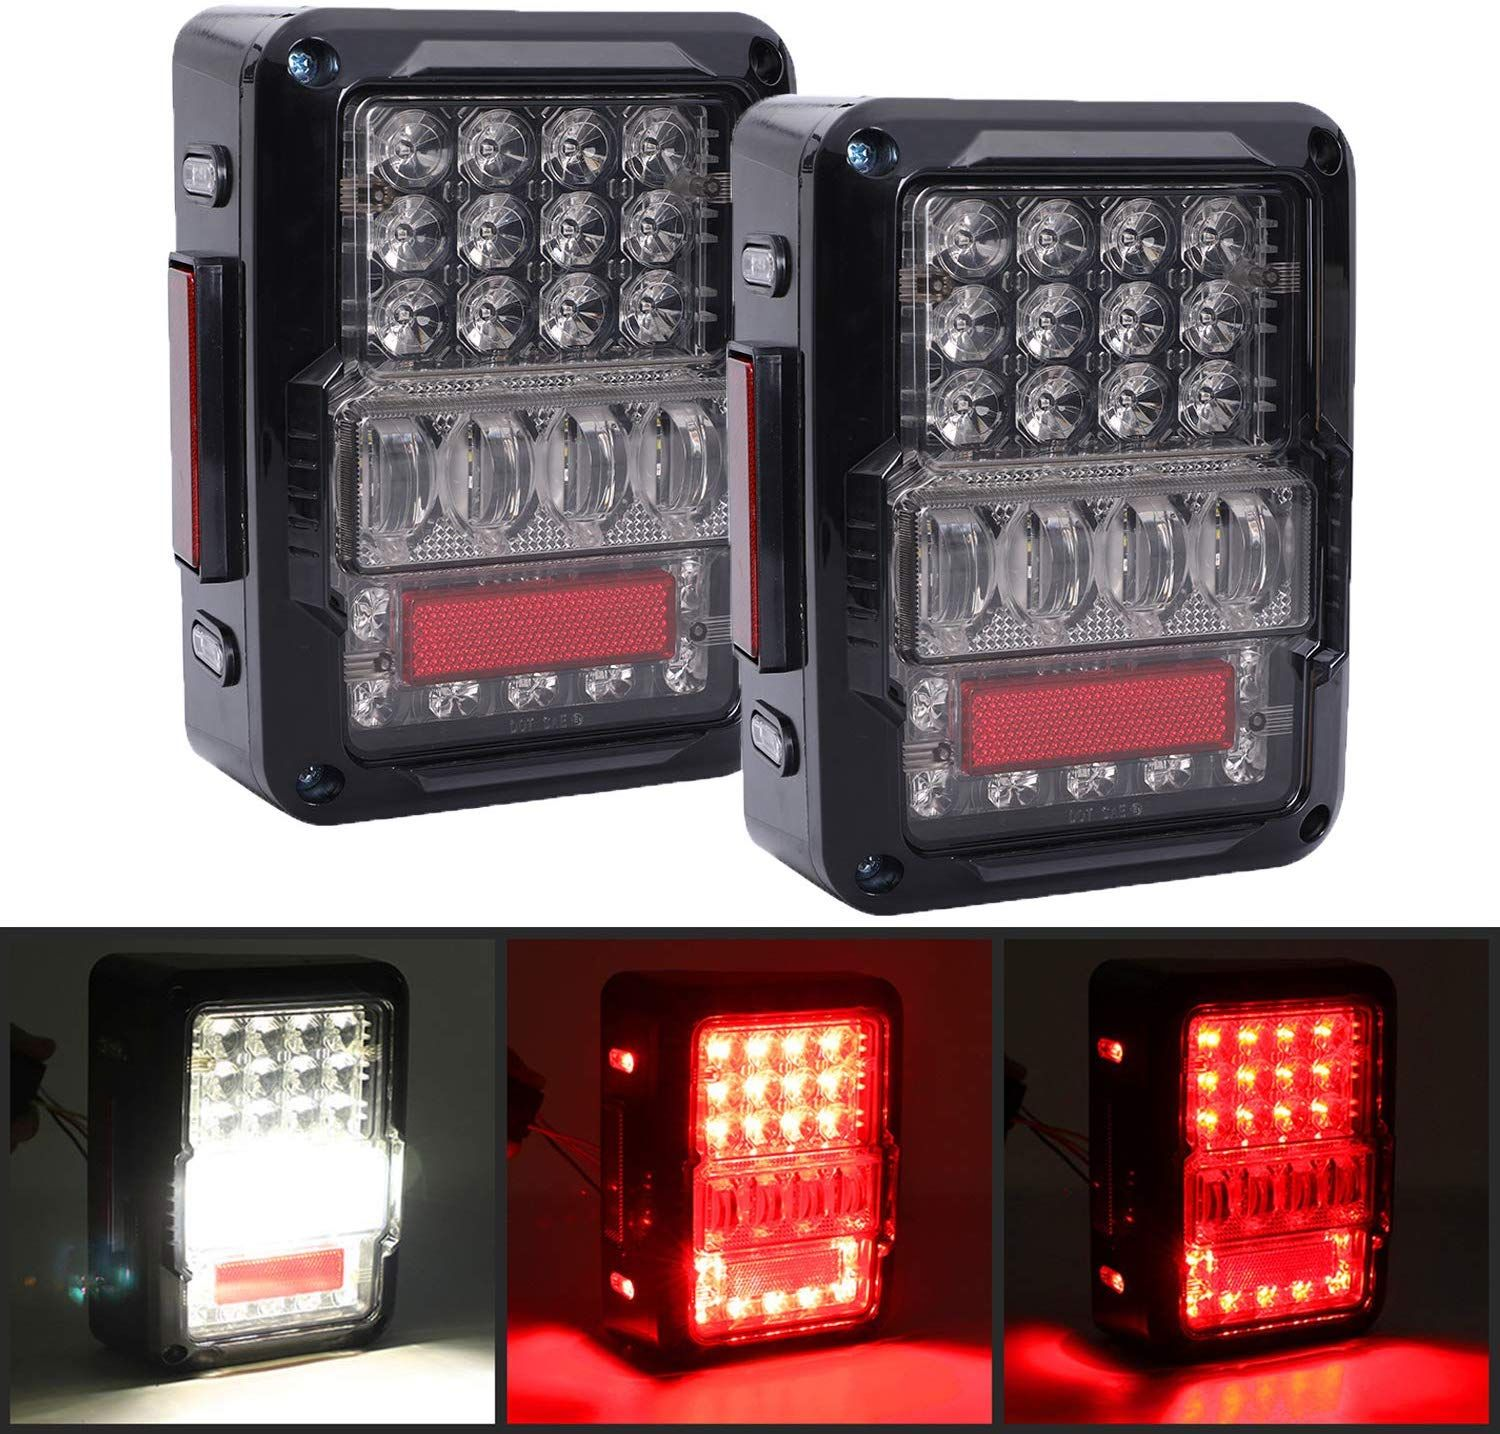 For Jeep Wrangler JK 2007-2017 LED Rear Lamps Tail Lights Accessories